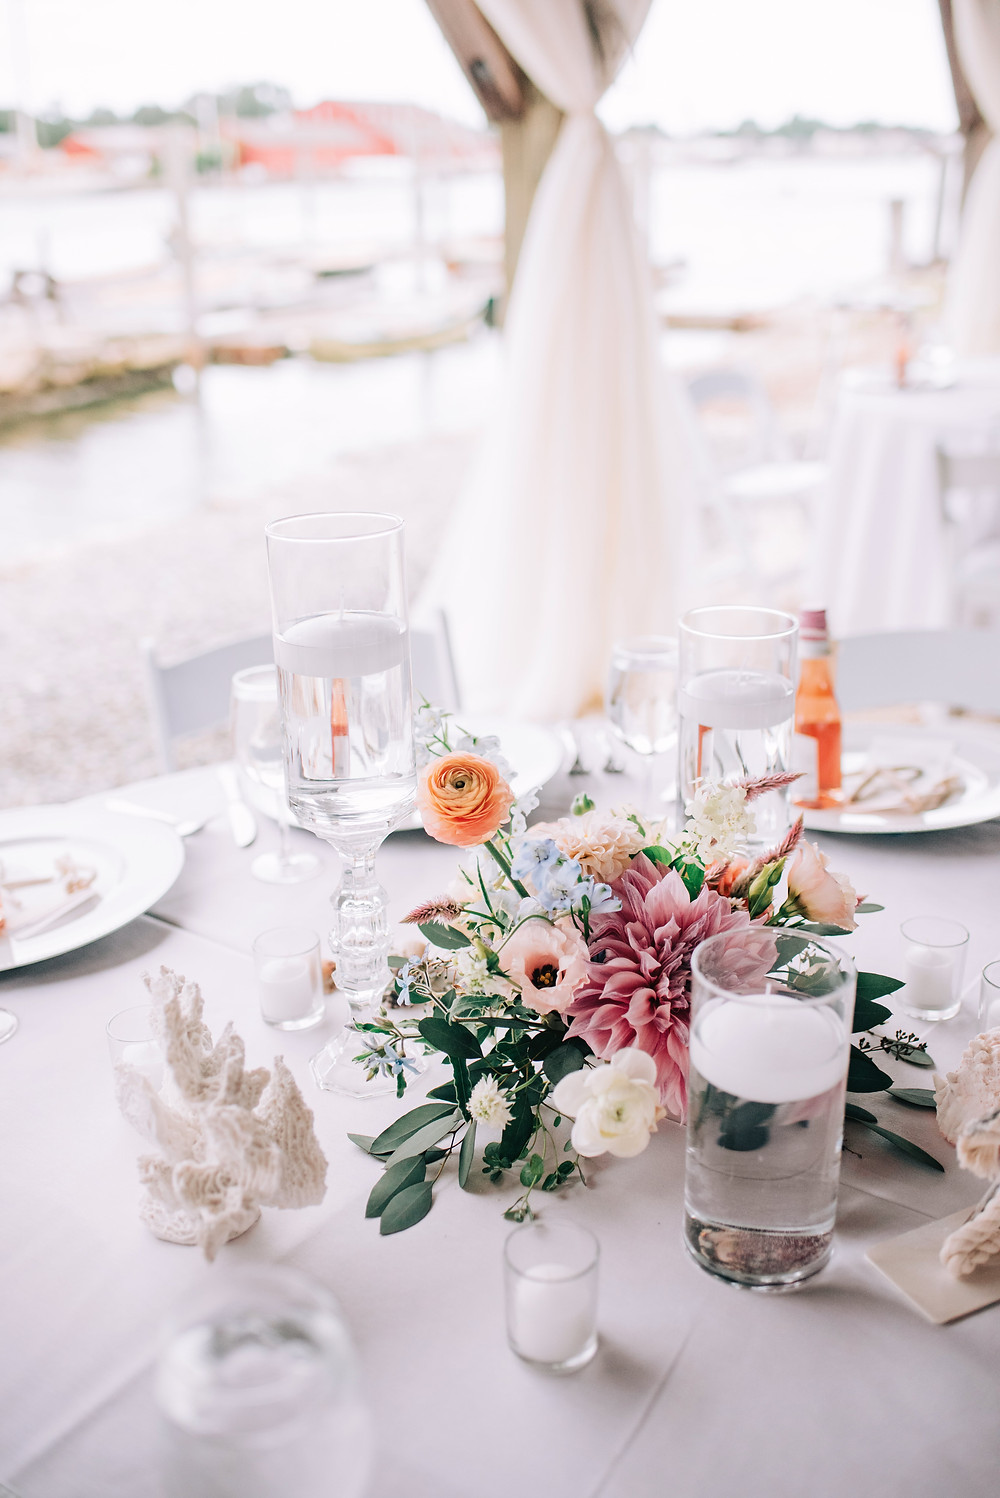 Blush & light blue Dahlia centerpieces with floating candles at Boat shed in Mystic Seaport Museum